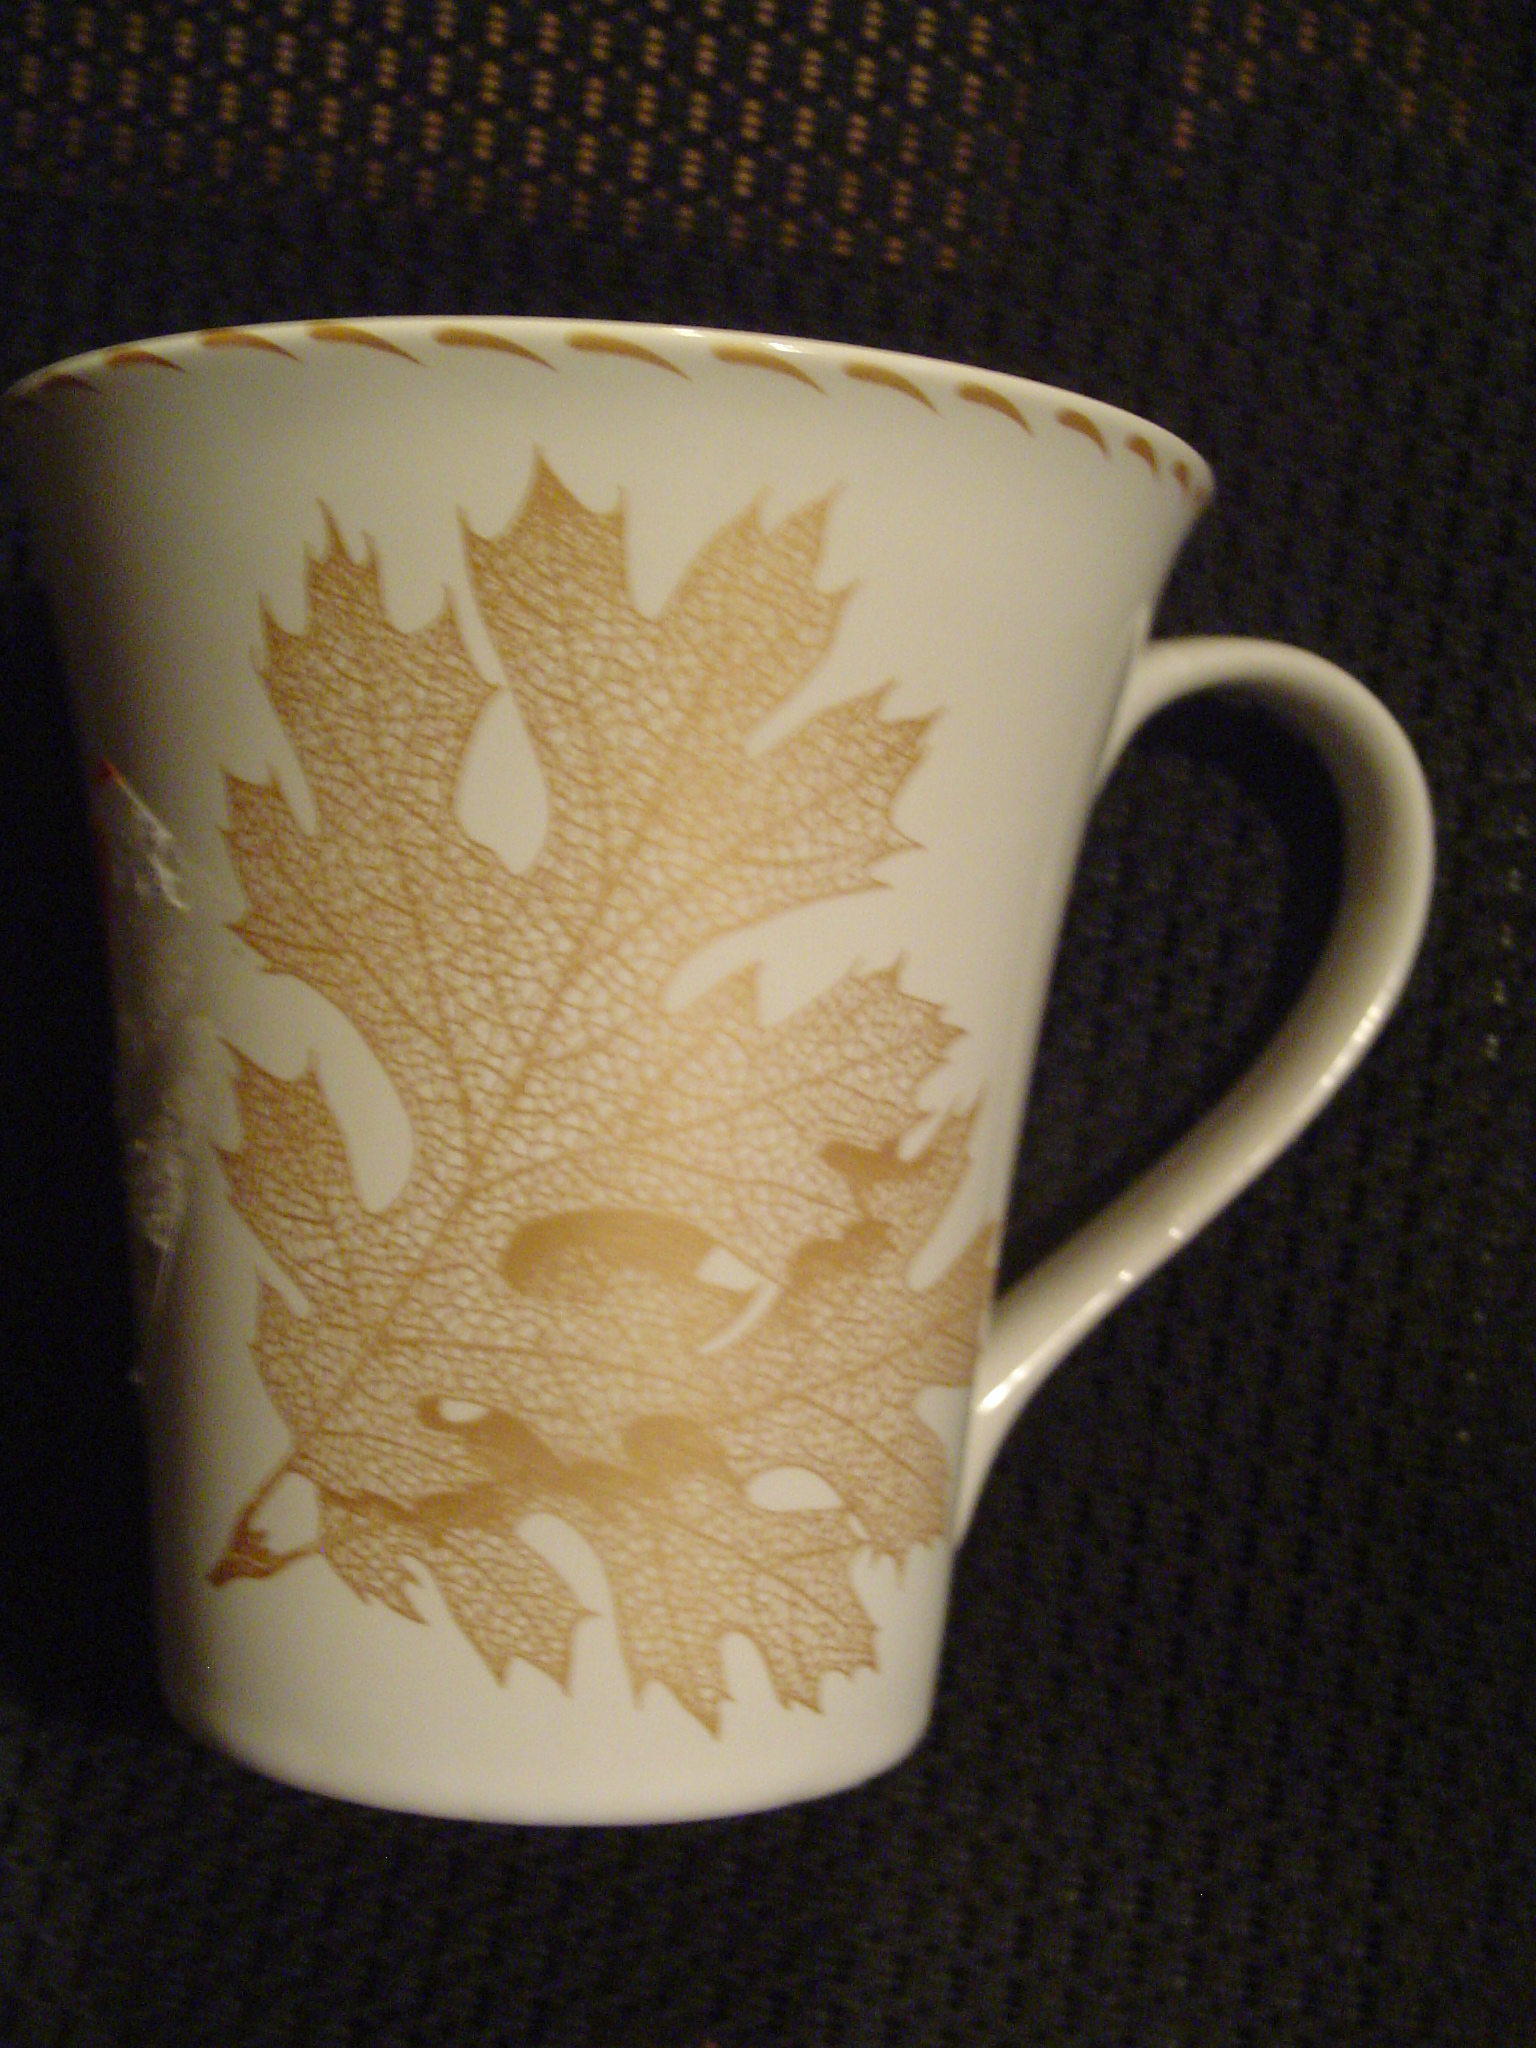 222 Fifth Avenue Gold Leaf Tall Mugs Reduced 40%